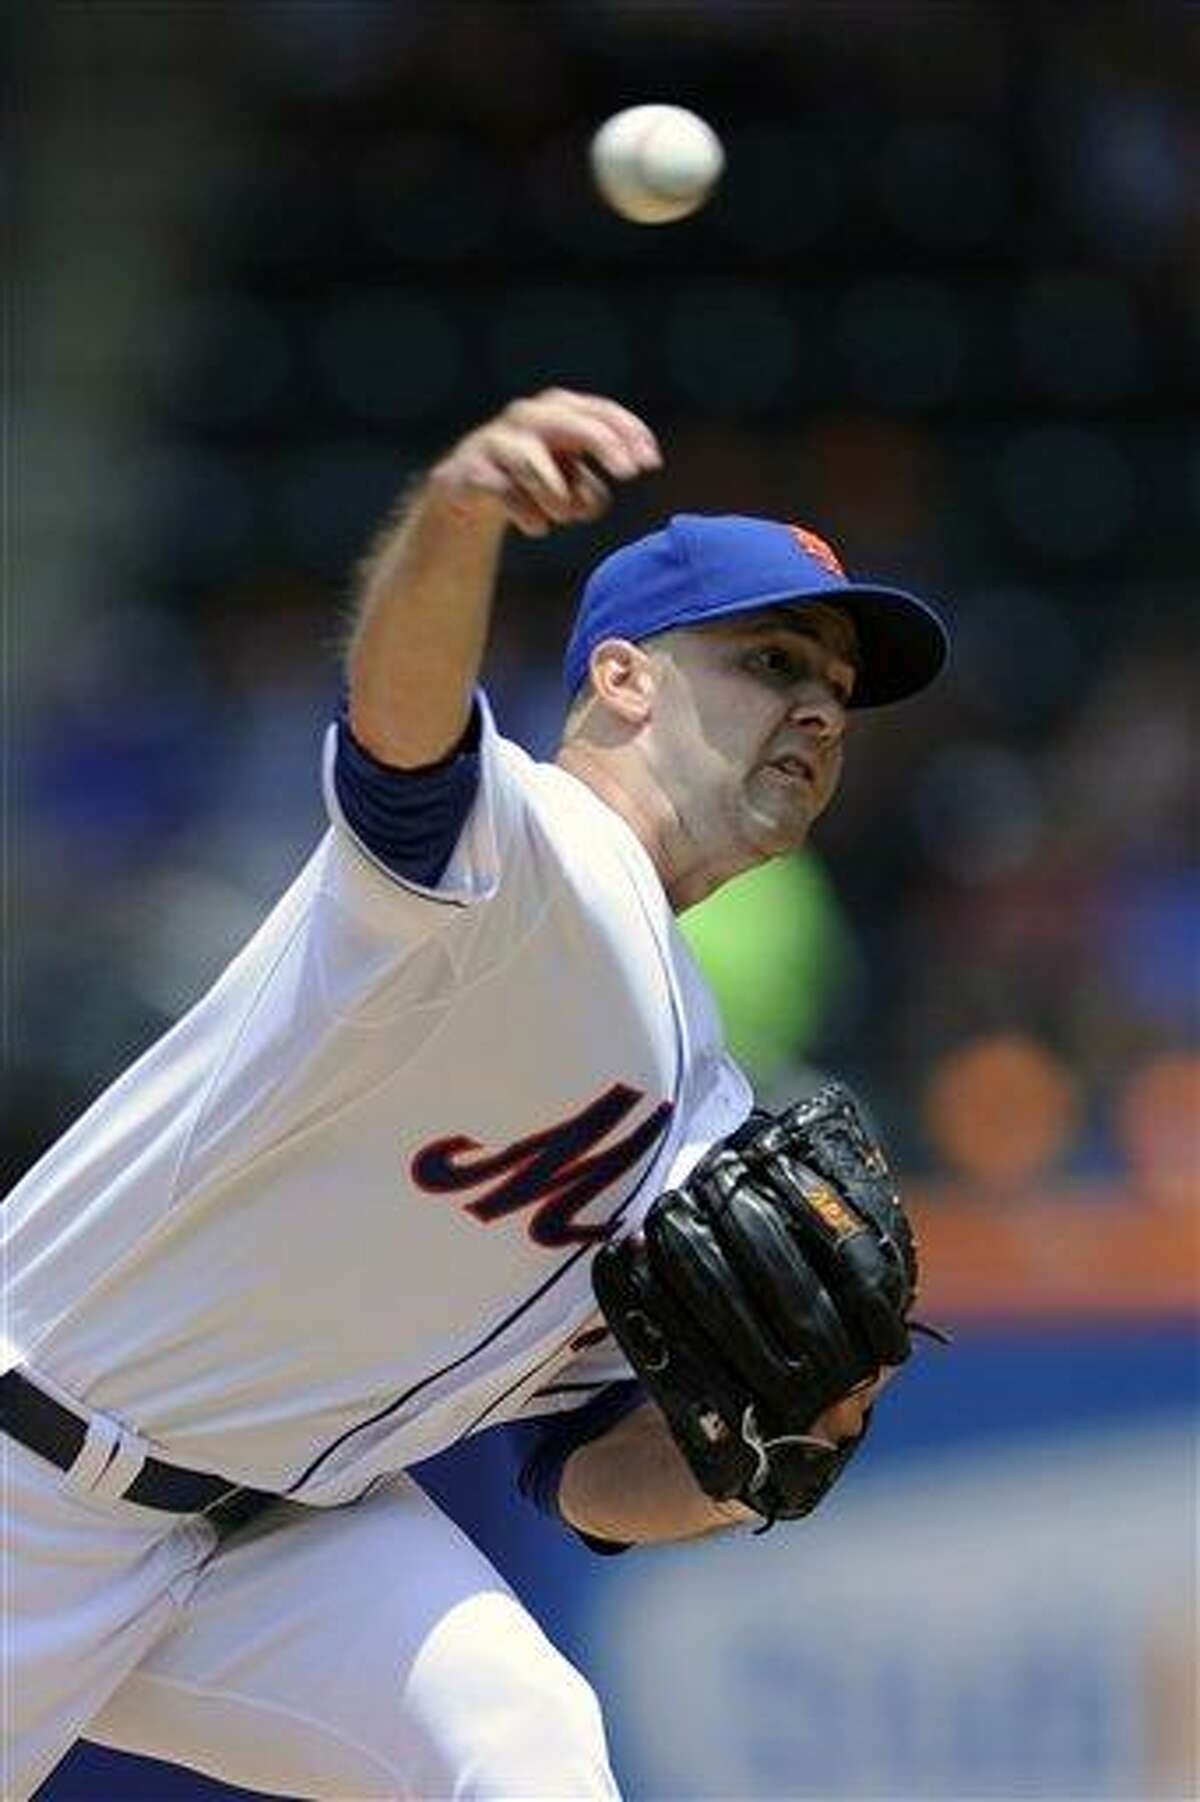 New York Mets pitcher Dillon Gee delivers the ball to the Washington Nationals during the first inning of a baseball game Saturday, June 29, 2013, in New York. (AP Photo/Bill Kostroun)